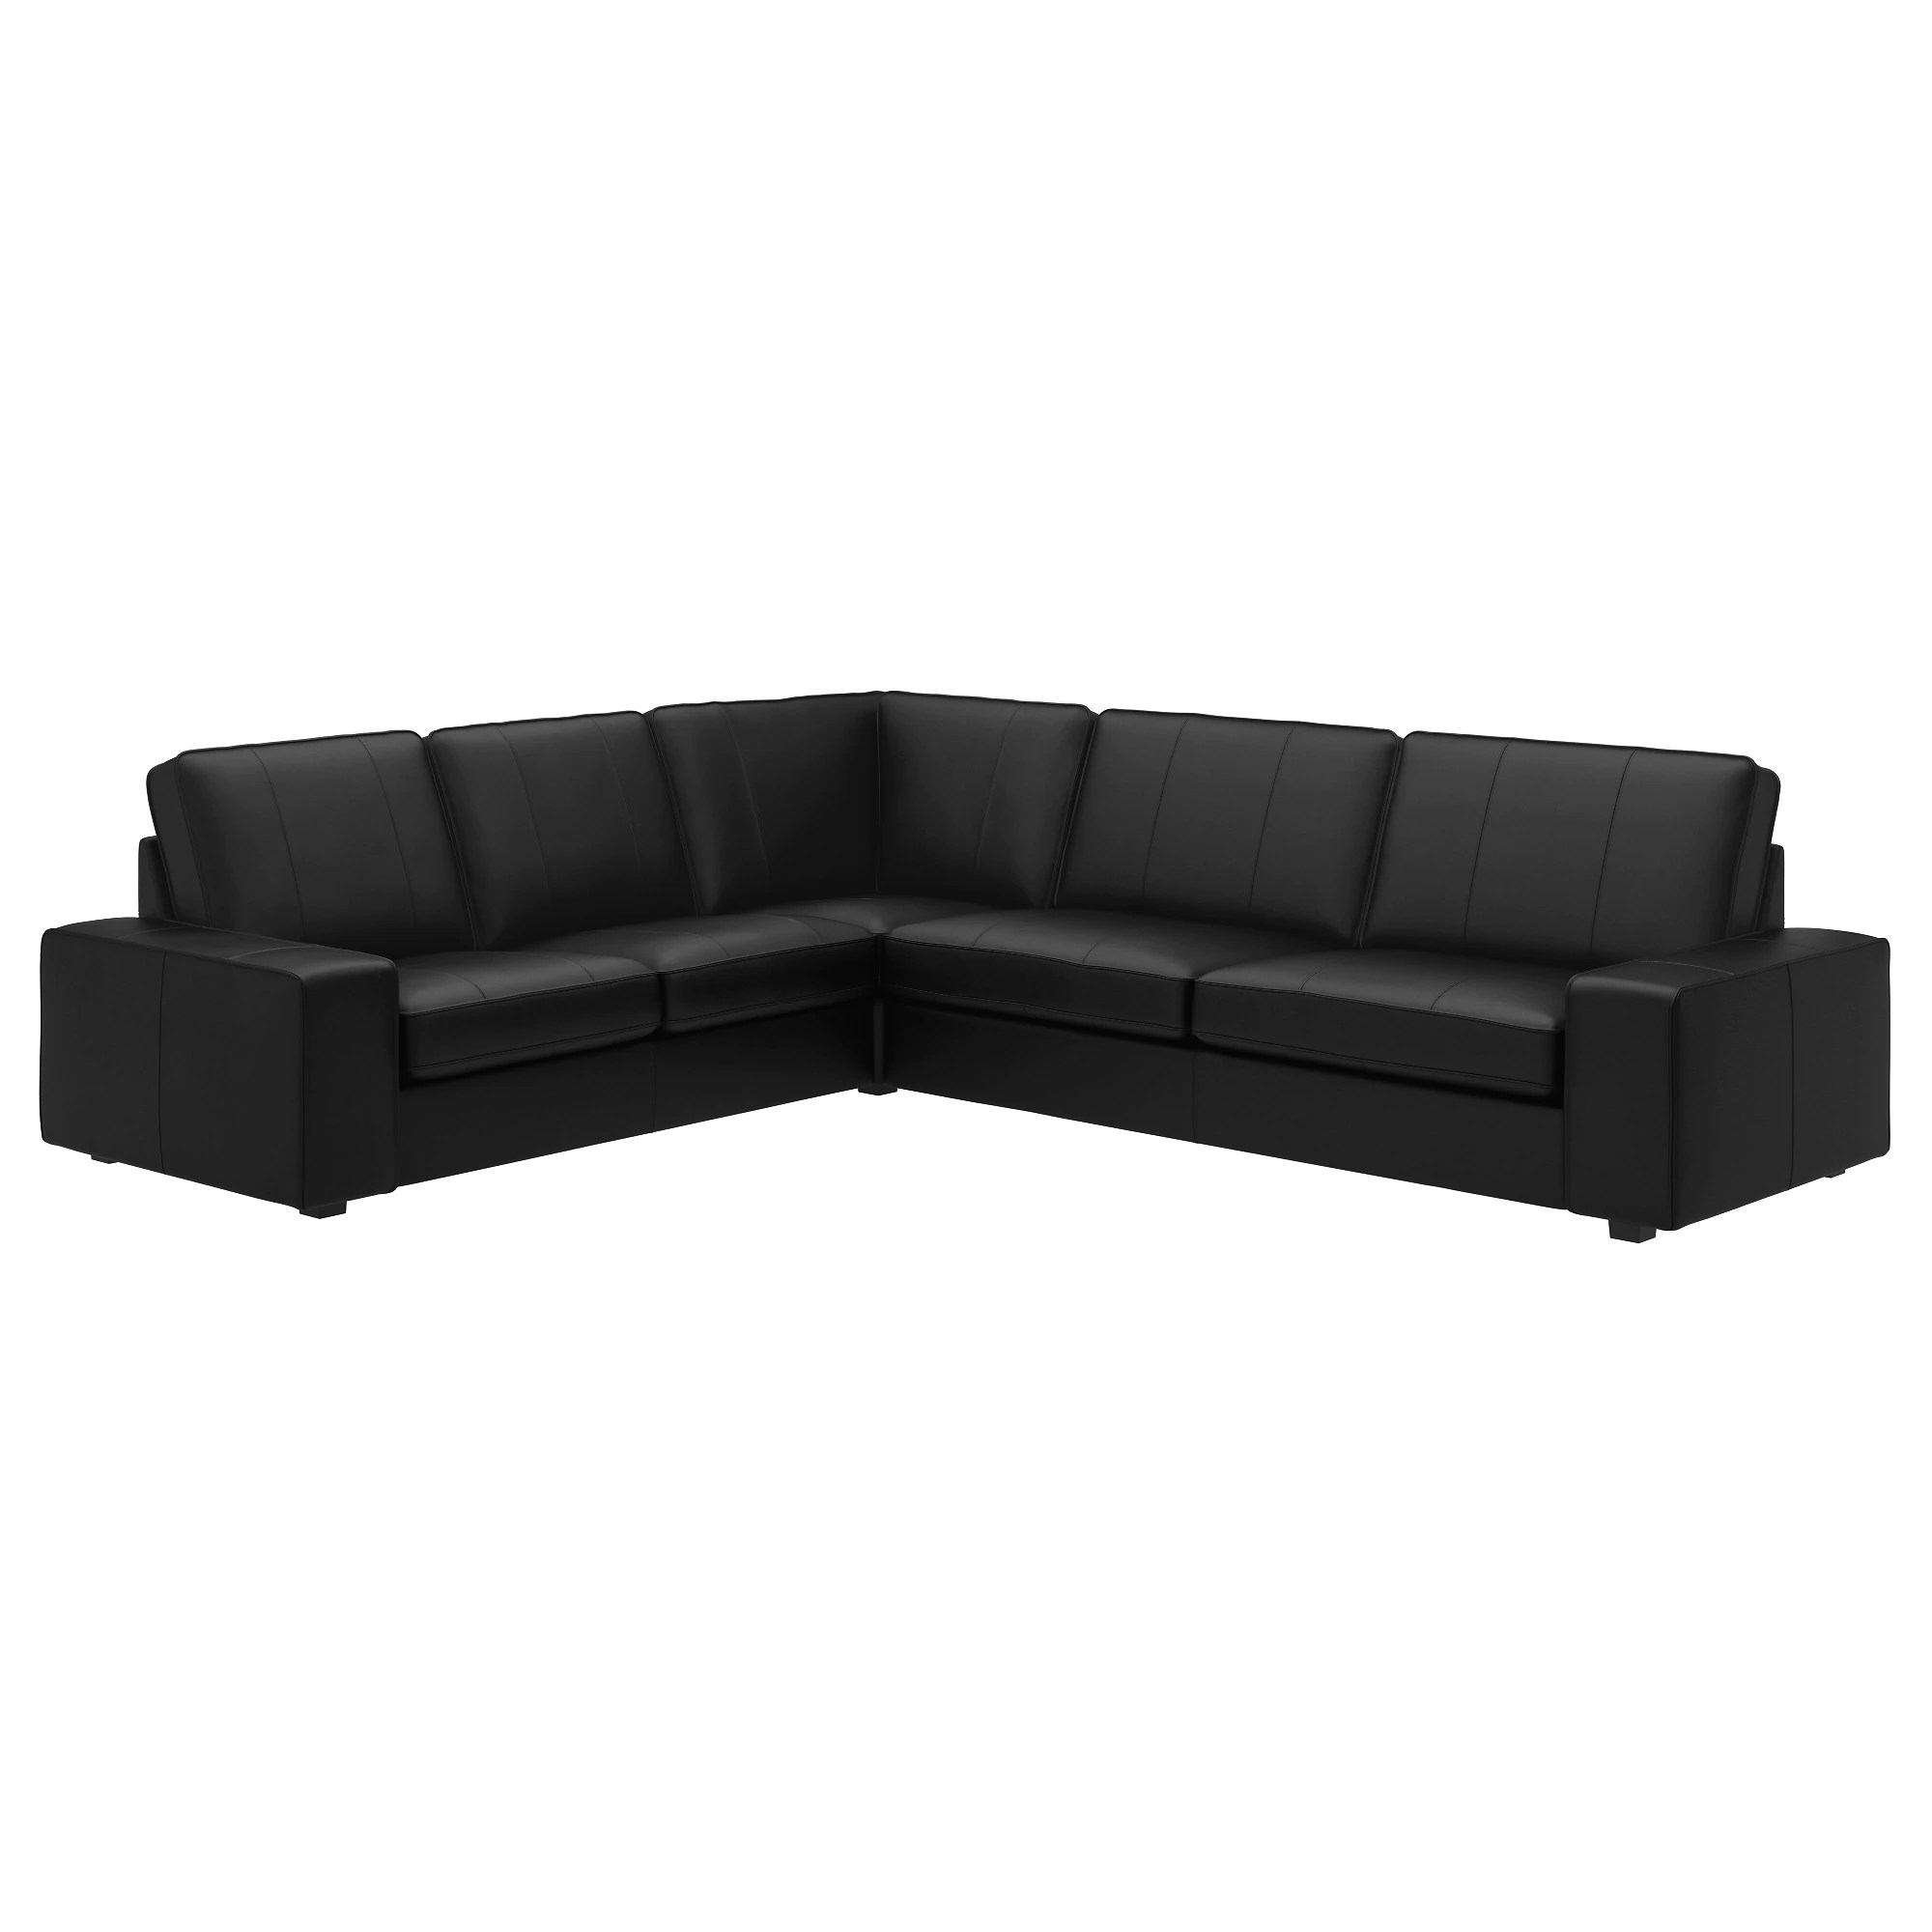 Kivik Sofa Leather Kivik Sectional 5 Seat Corner Grann Bomstad Dark Brown